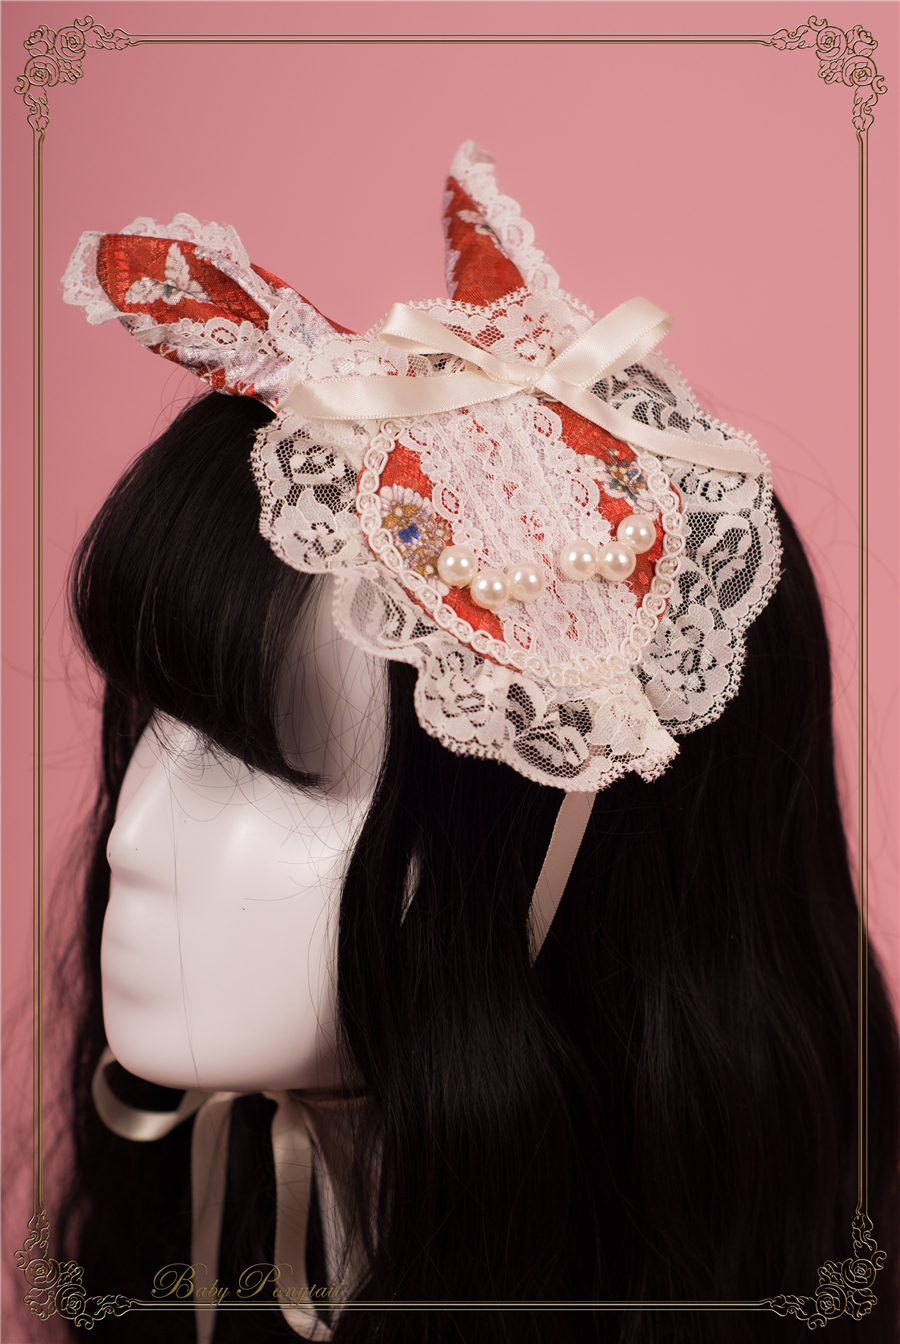 BabyPonytail_Stock Photo_My Favorite Companion_Bunny Head Dress_13.jpg